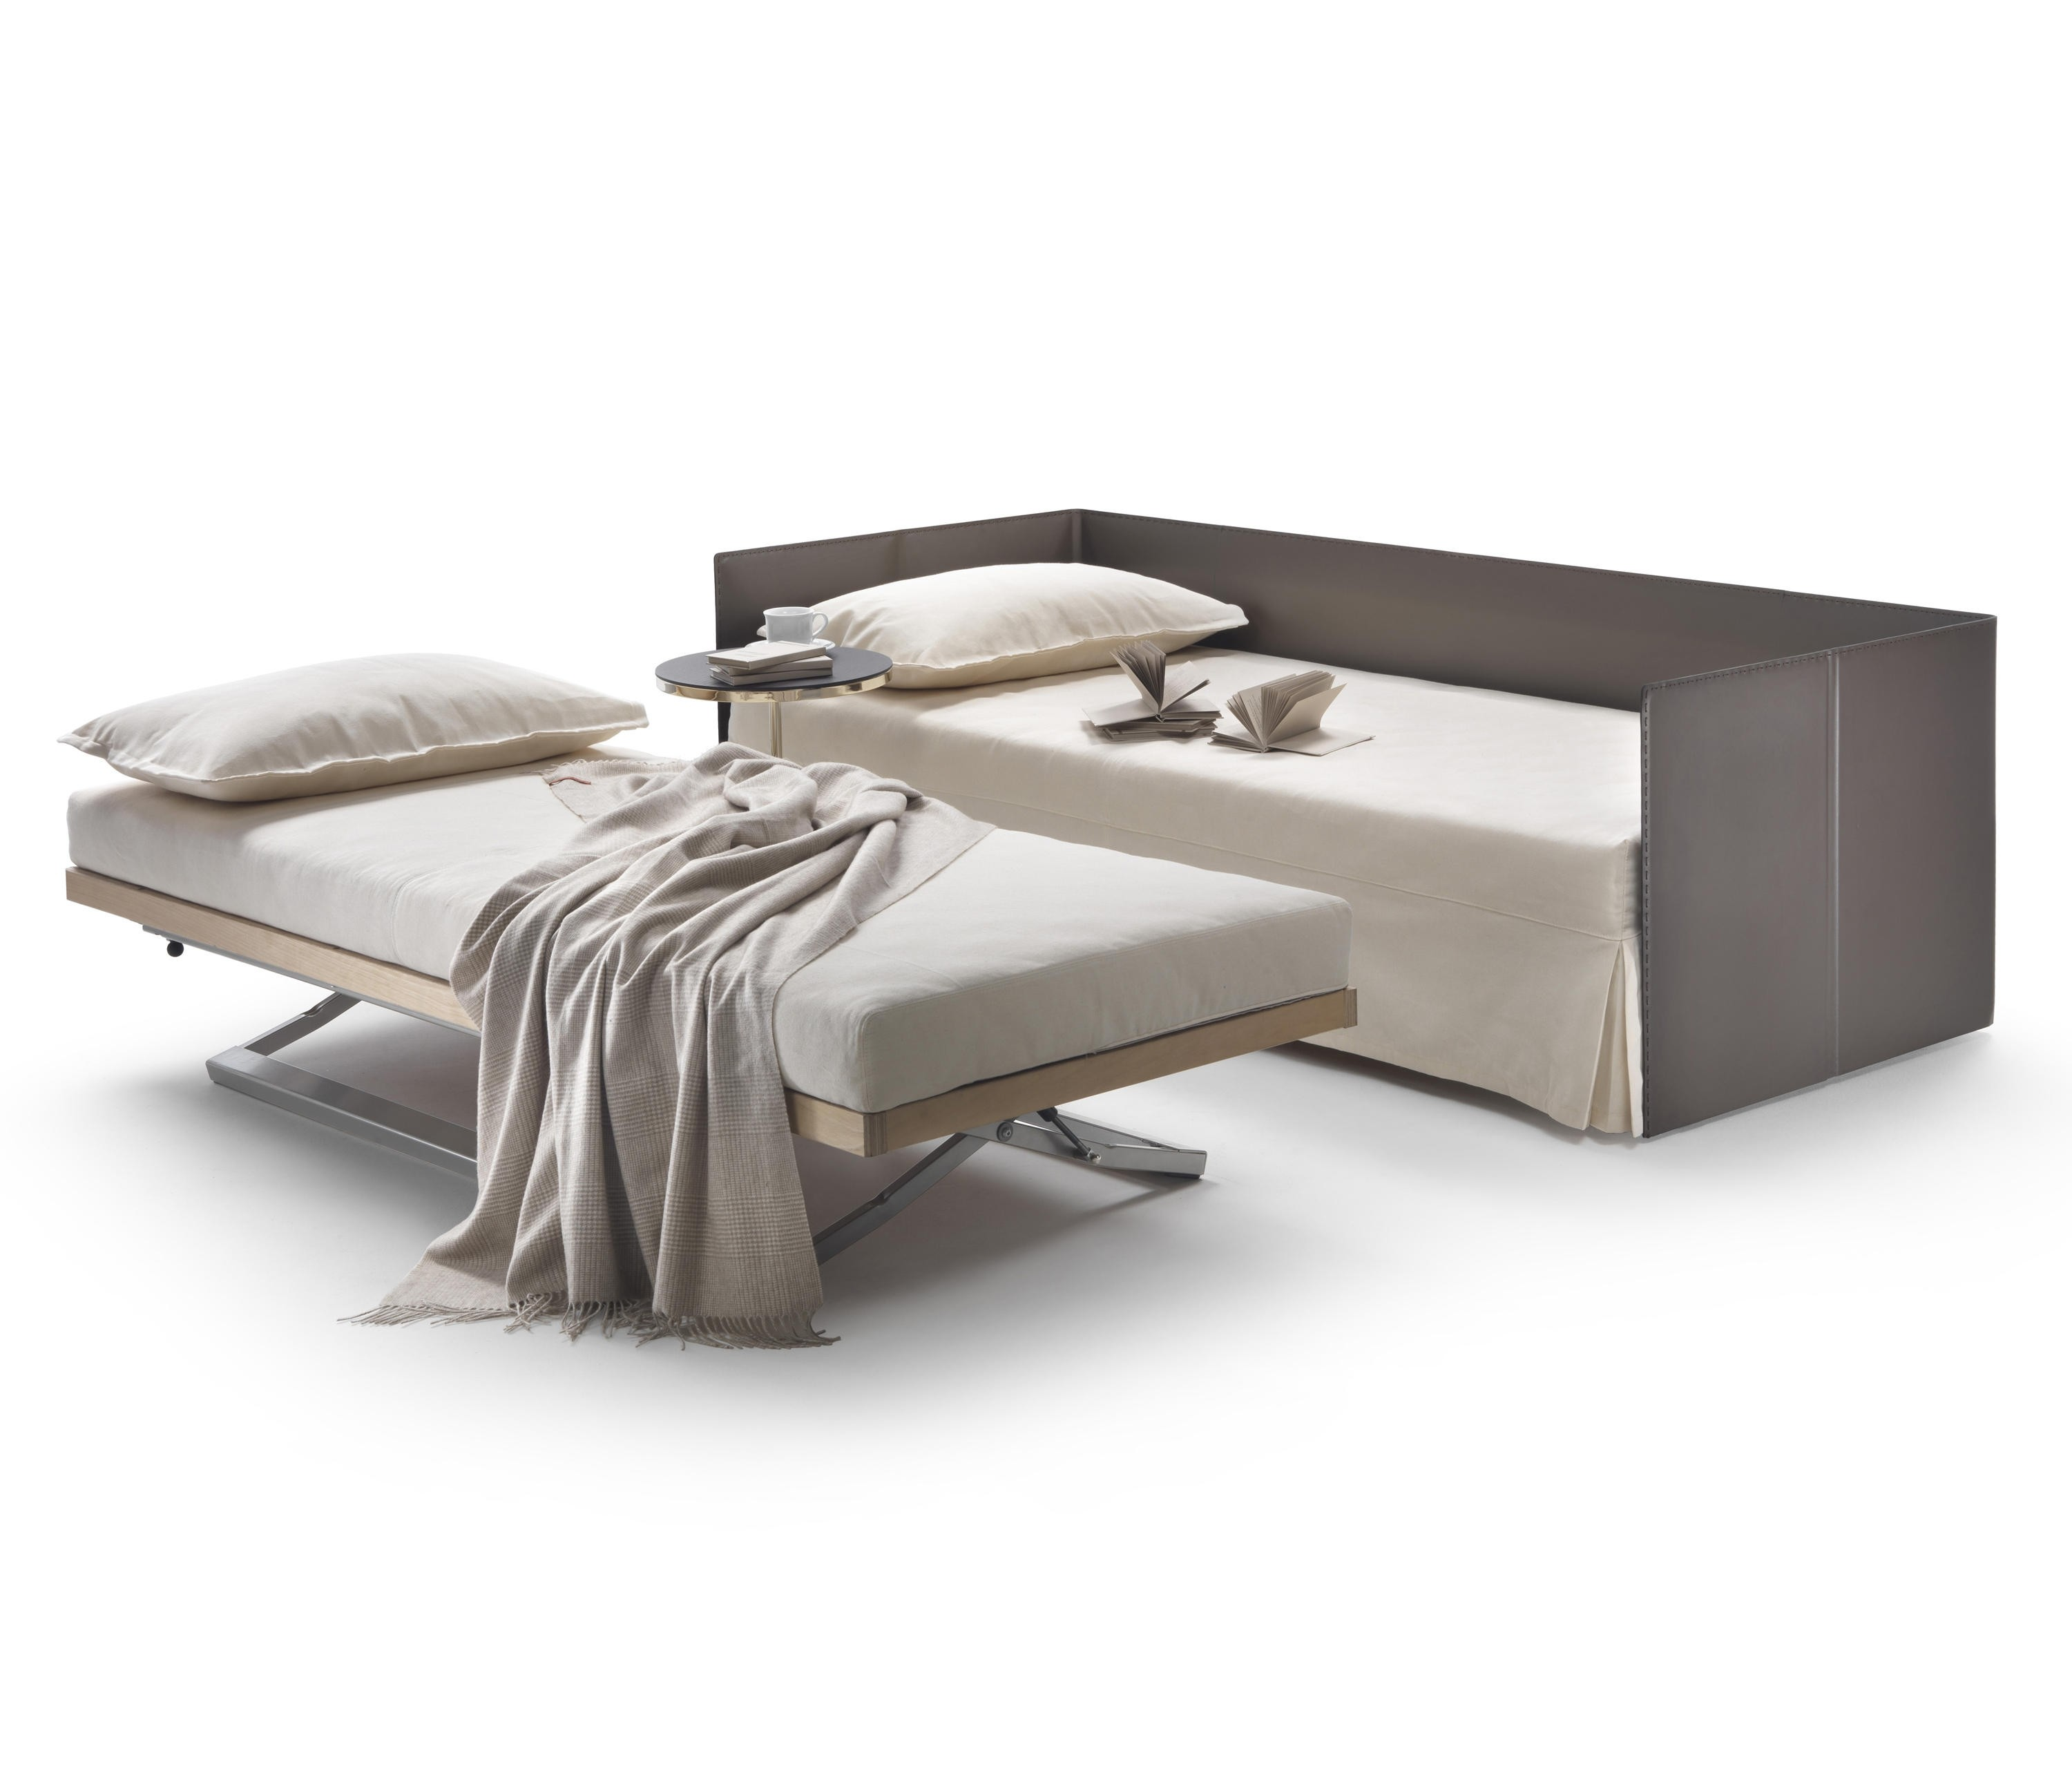 Sofa Helpdesk Flexform Twins Sofa Bed Deplain